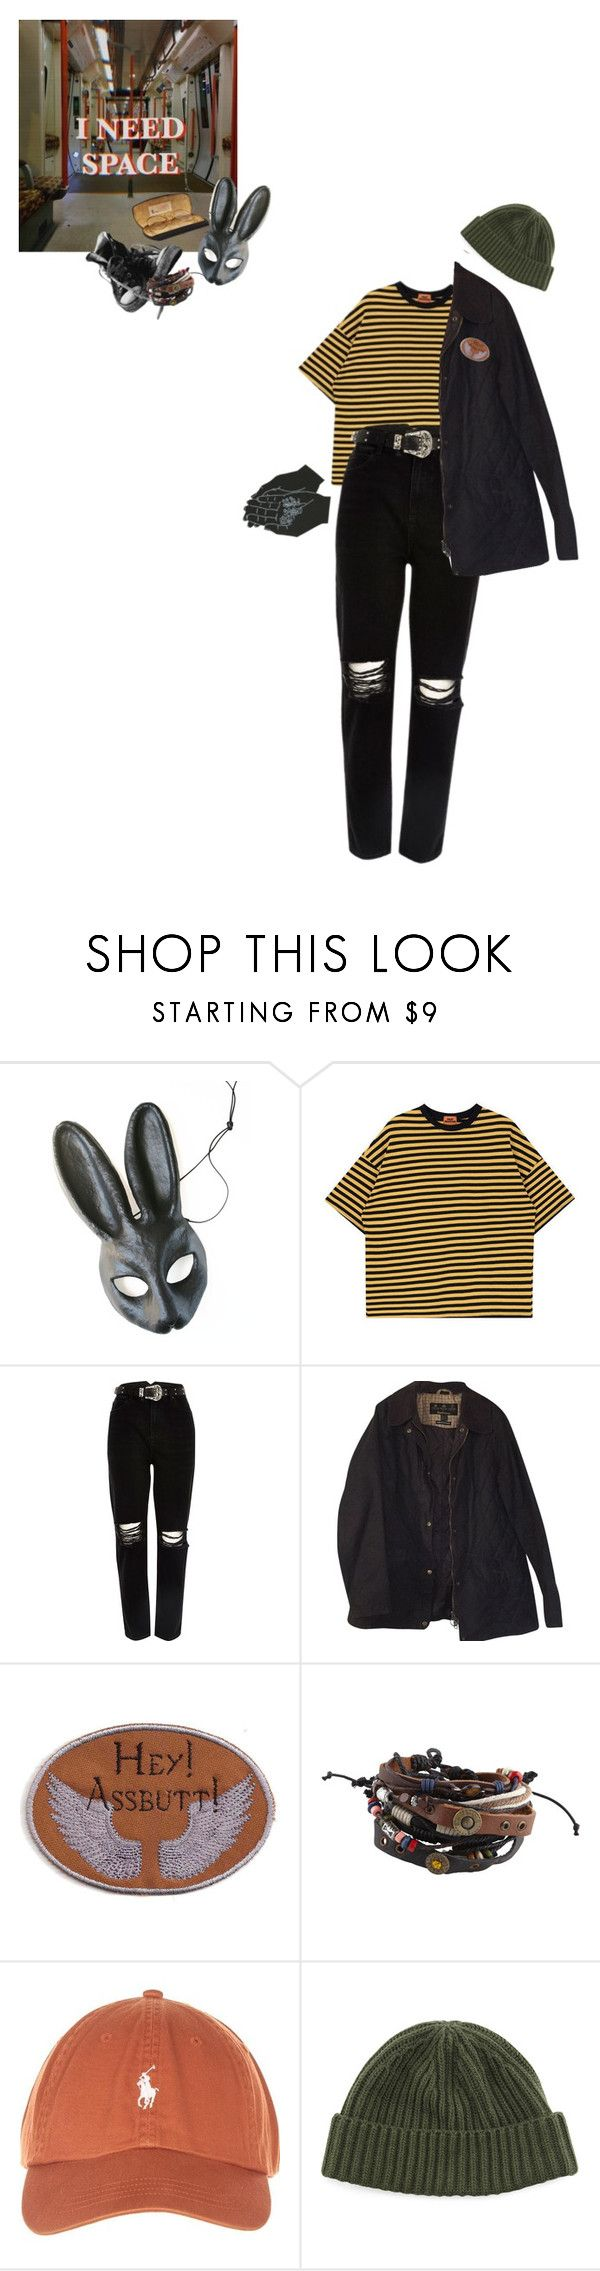 """""""Space"""" by lilmrsmocha ❤ liked on Polyvore featuring River Island, Barbour, ALDO and Bergdorf Goodman"""